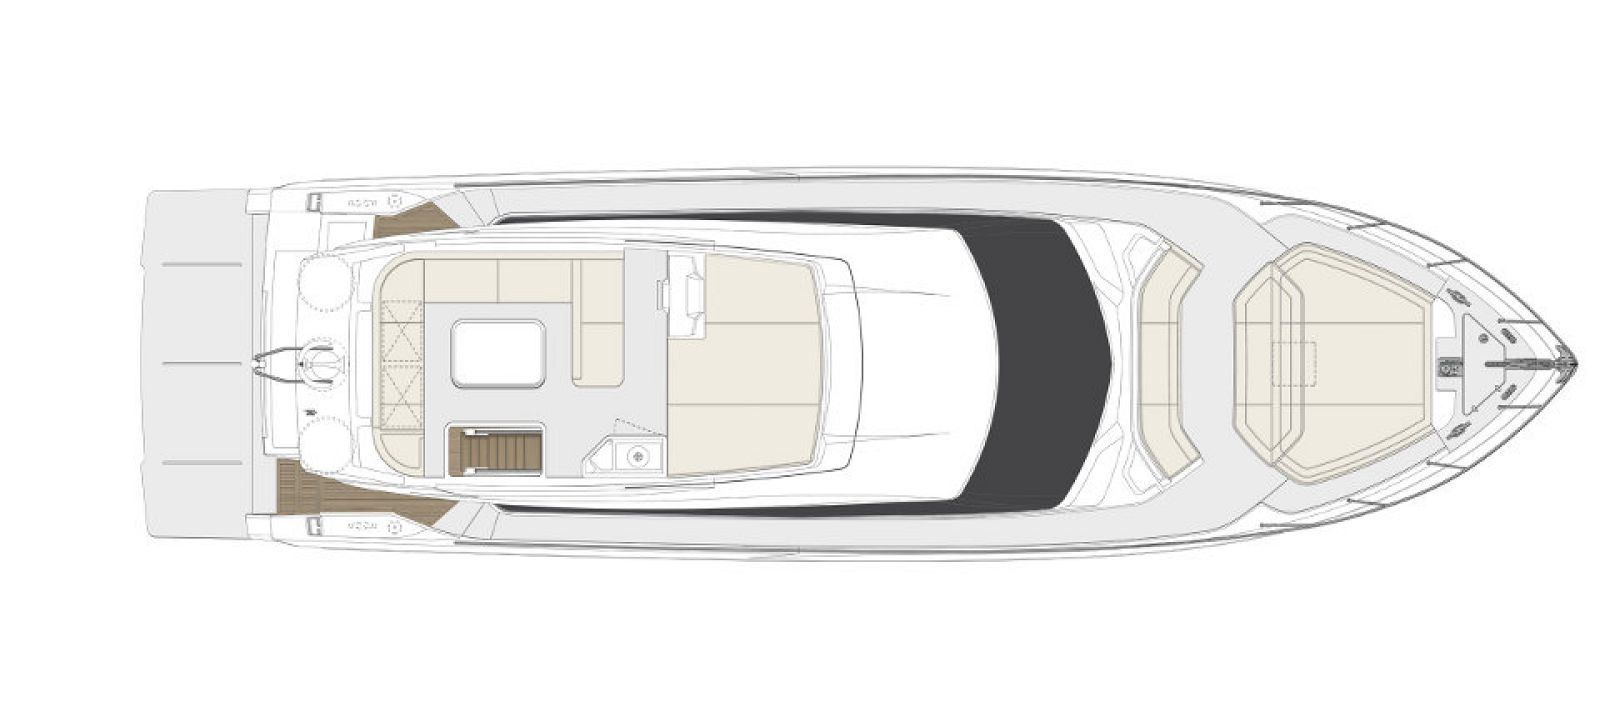 Ferretti Yachts 550 Layout - New Luxury Yacht for Sale >